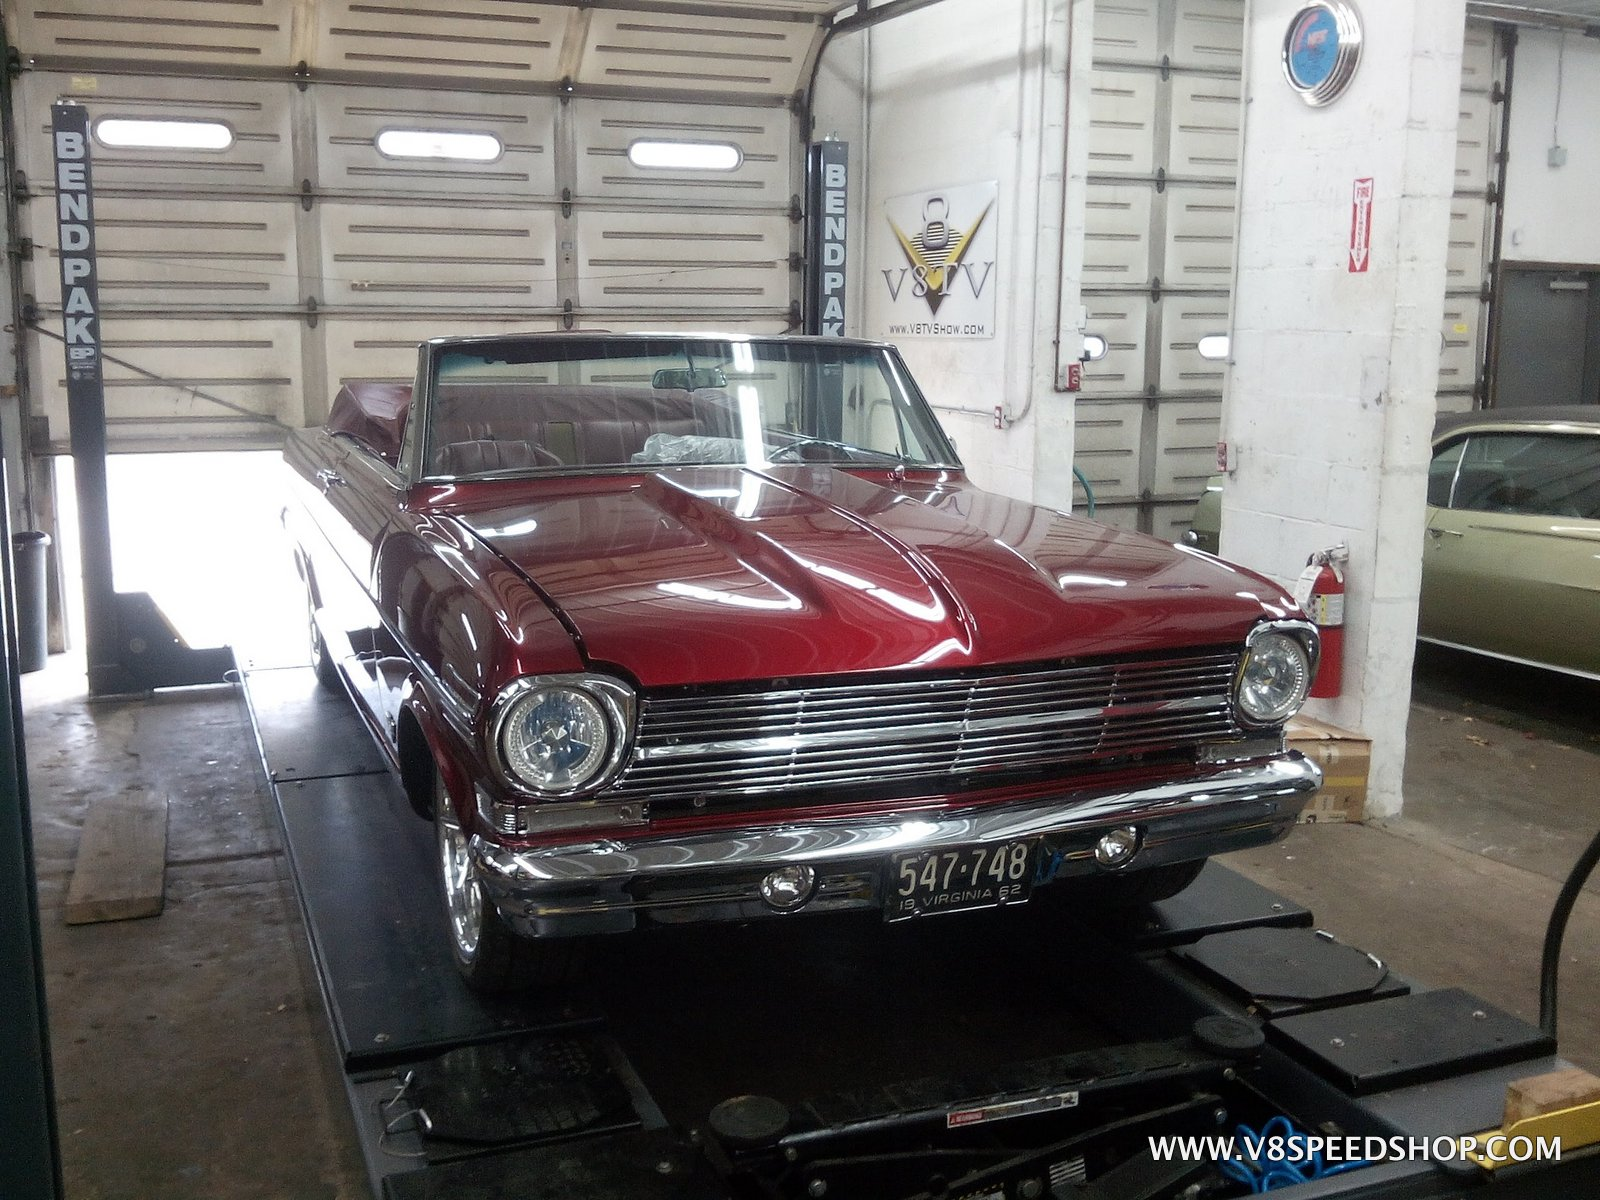 1962 Chevrolet Nova Maintenance at V8 Speed and Resto Shop Photo Gallery